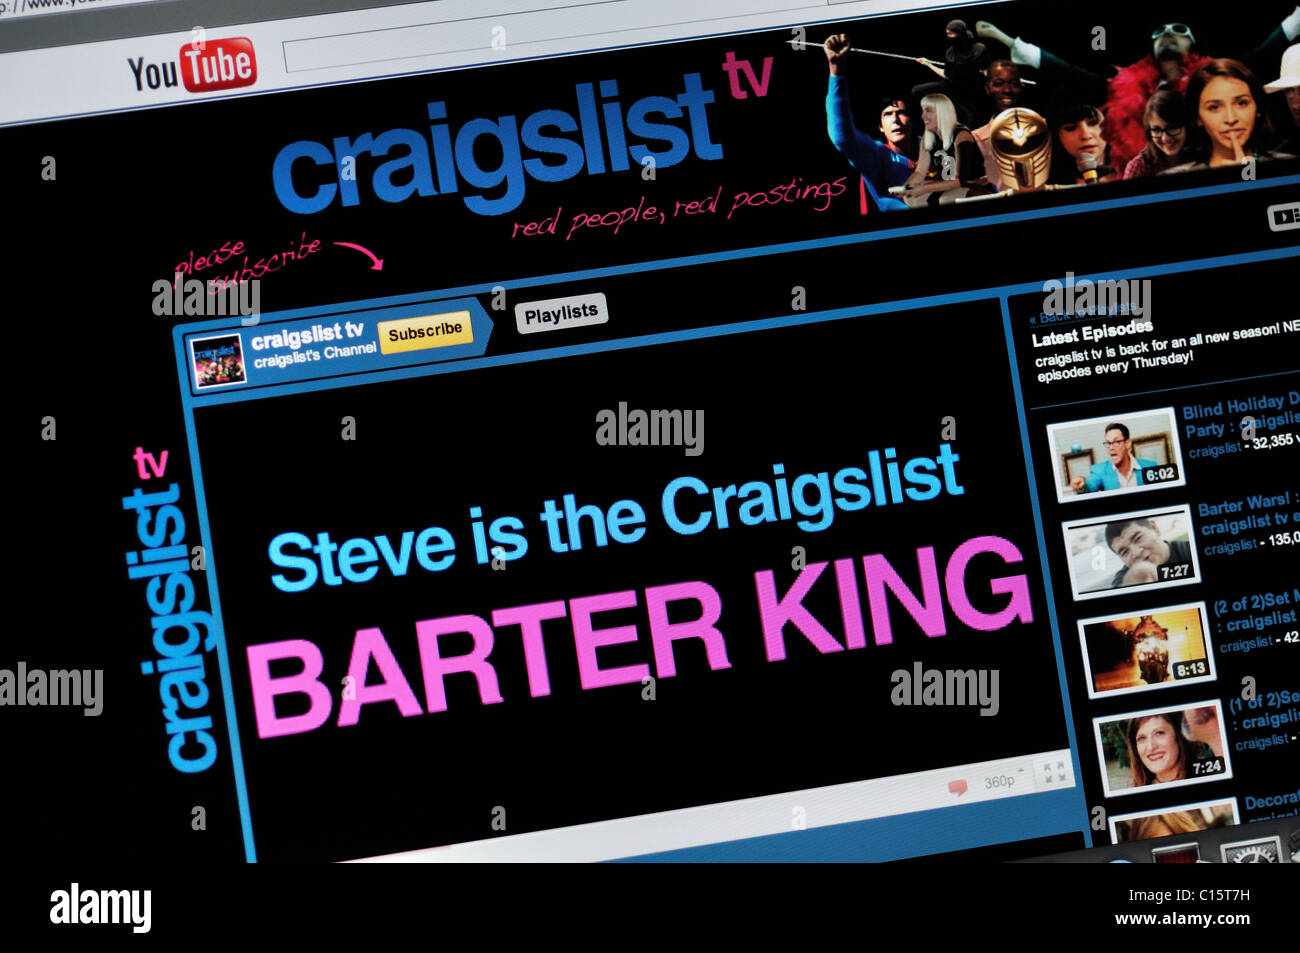 Craigslist on YouTube website Stock Photo: 35164181 - Alamy